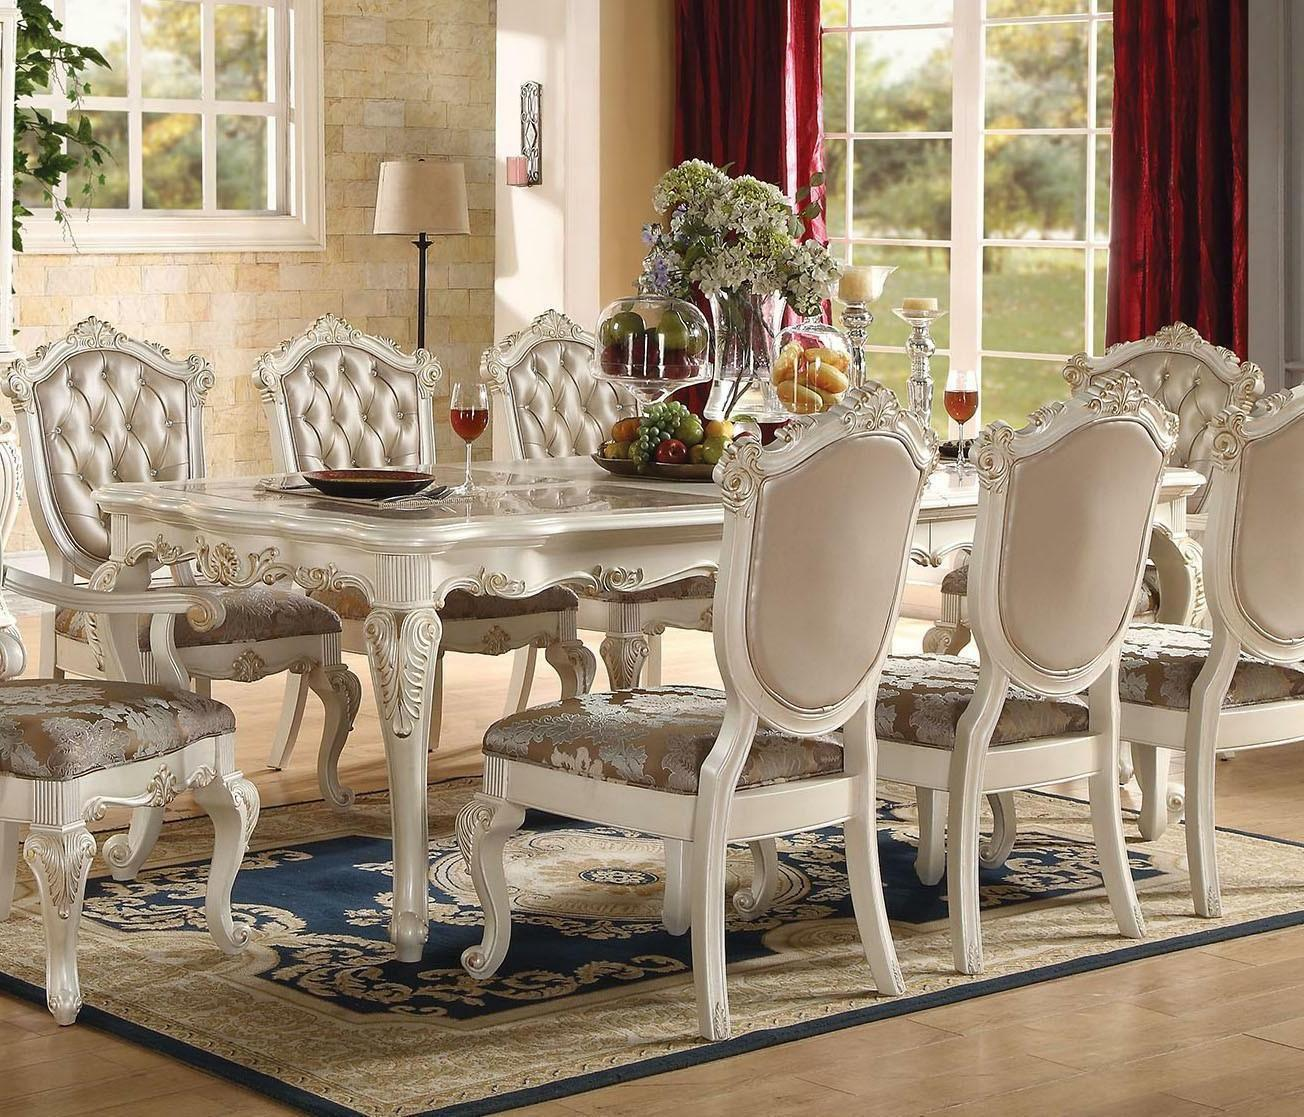 NEW 9PC FORMAL FRENCH FINISH DINING SET